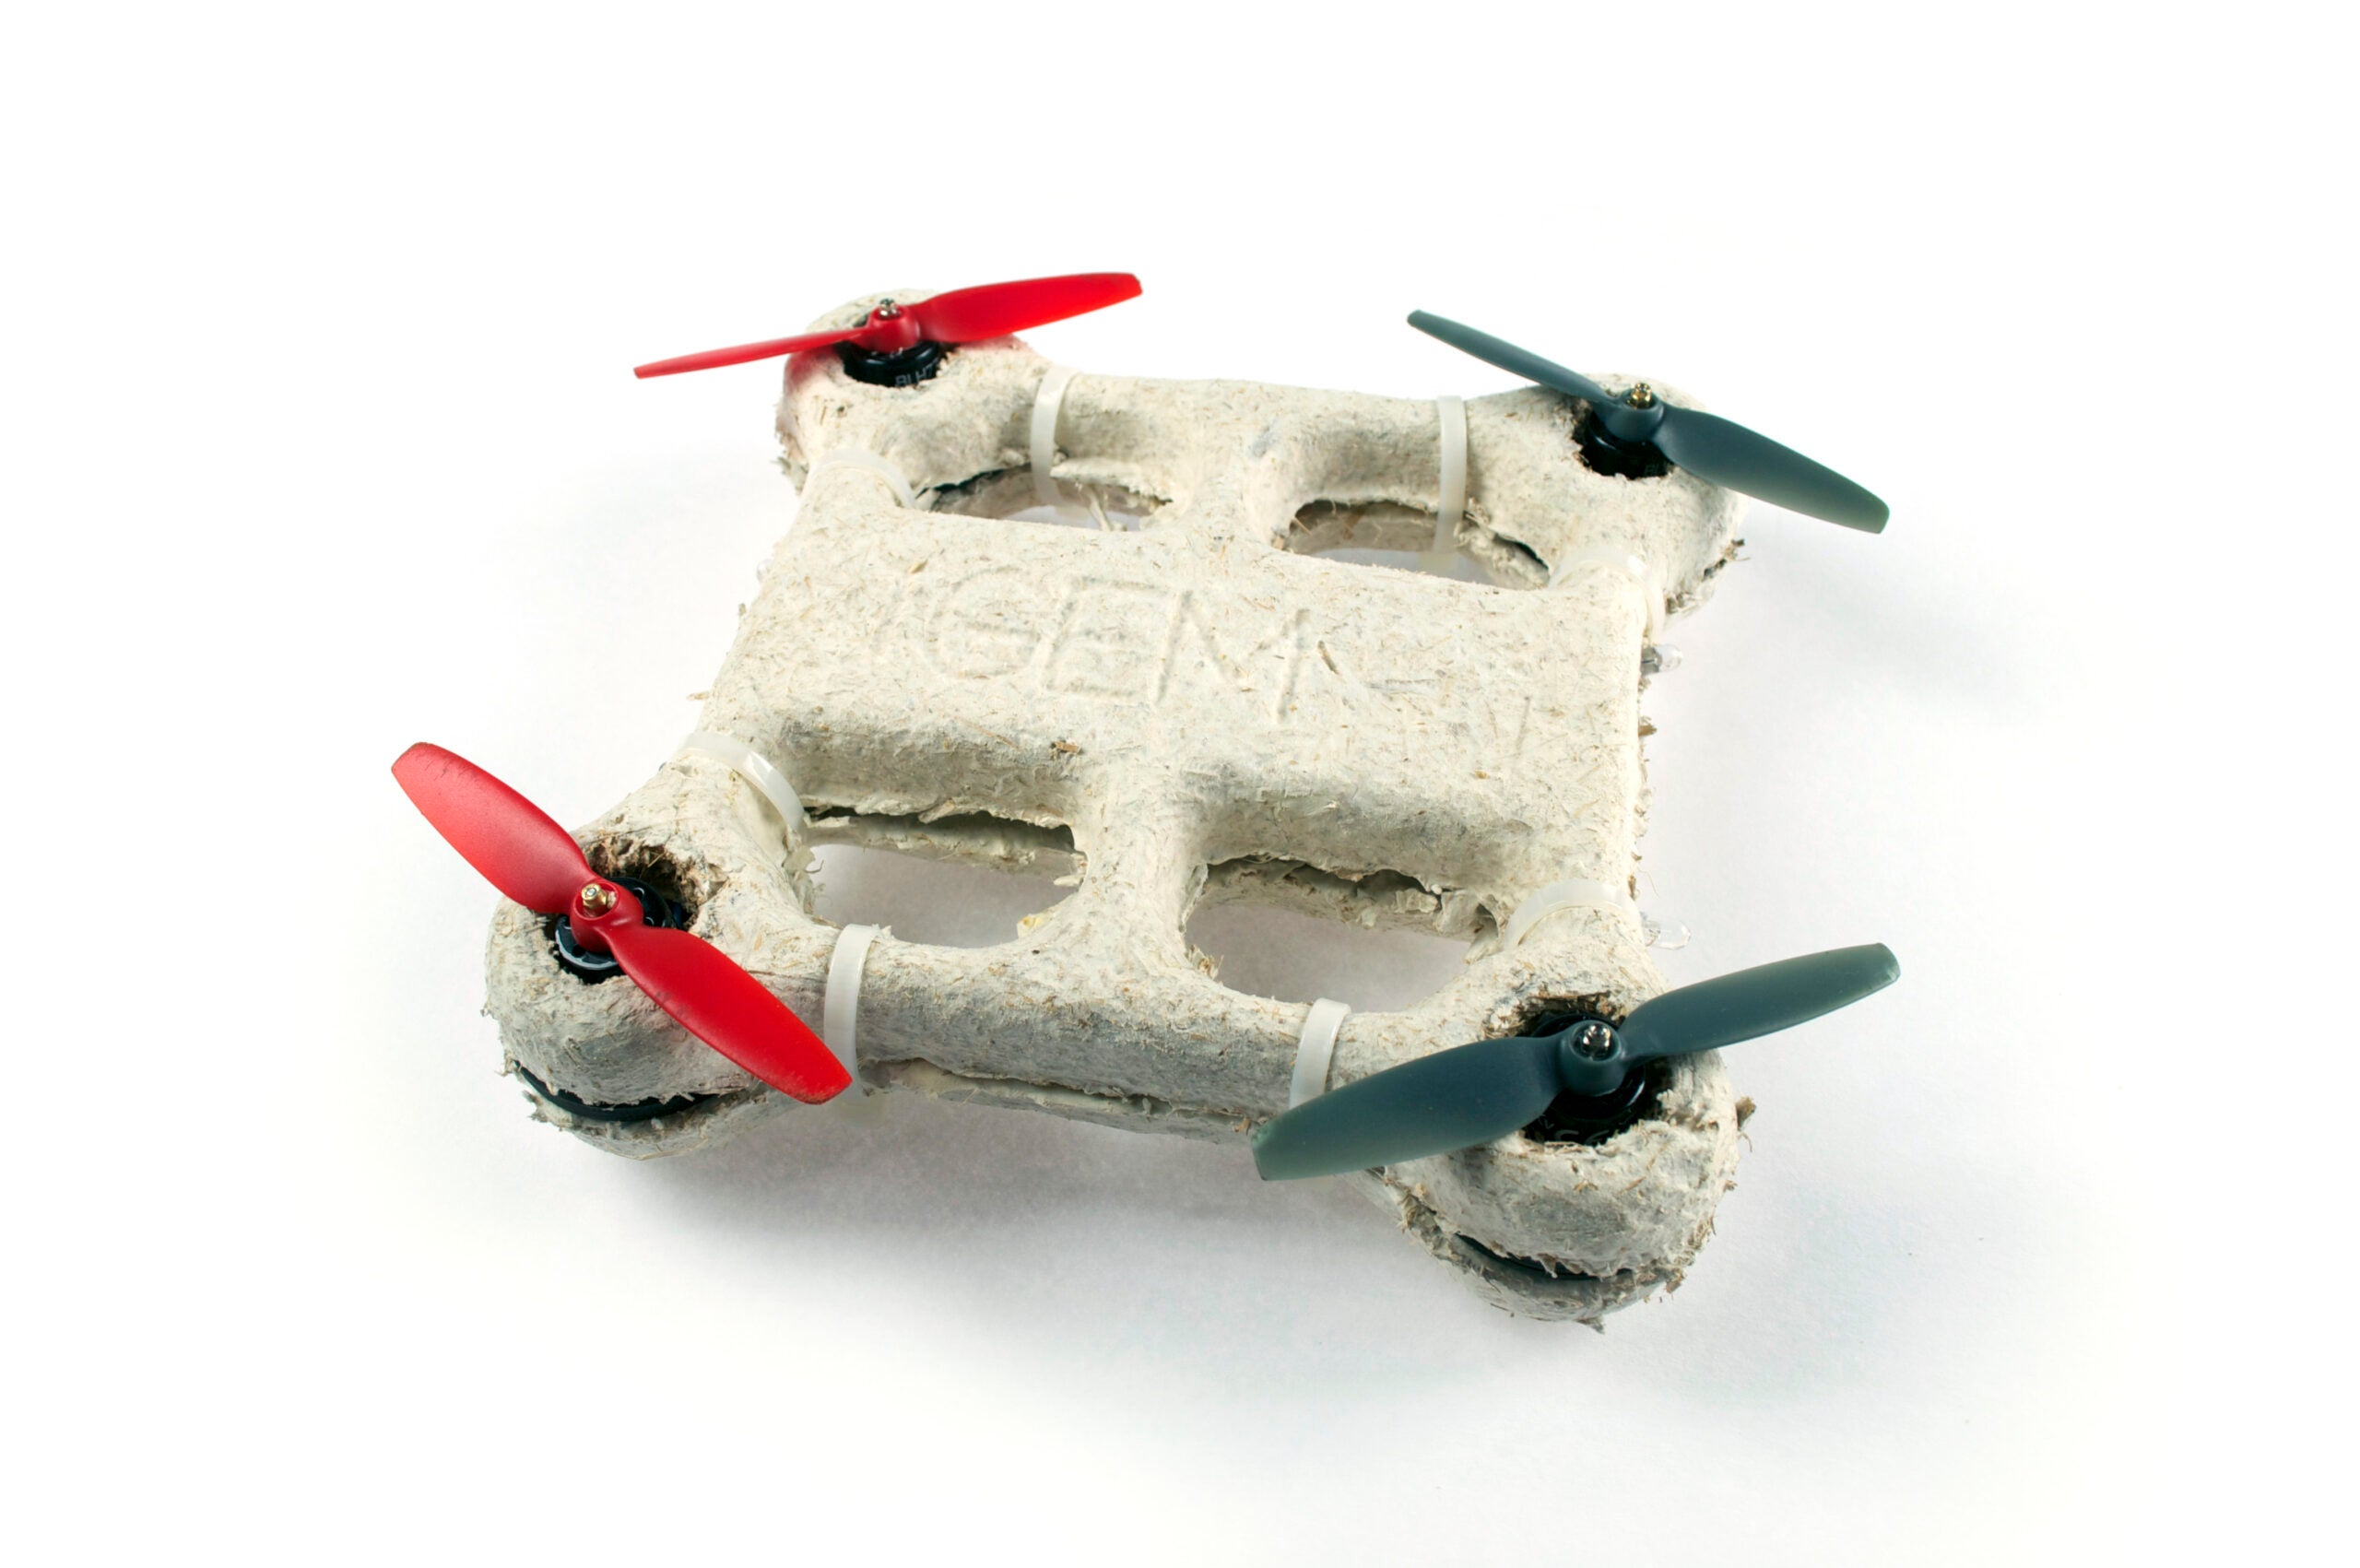 How It Works: Growing A Biological Drone To Explore Mars